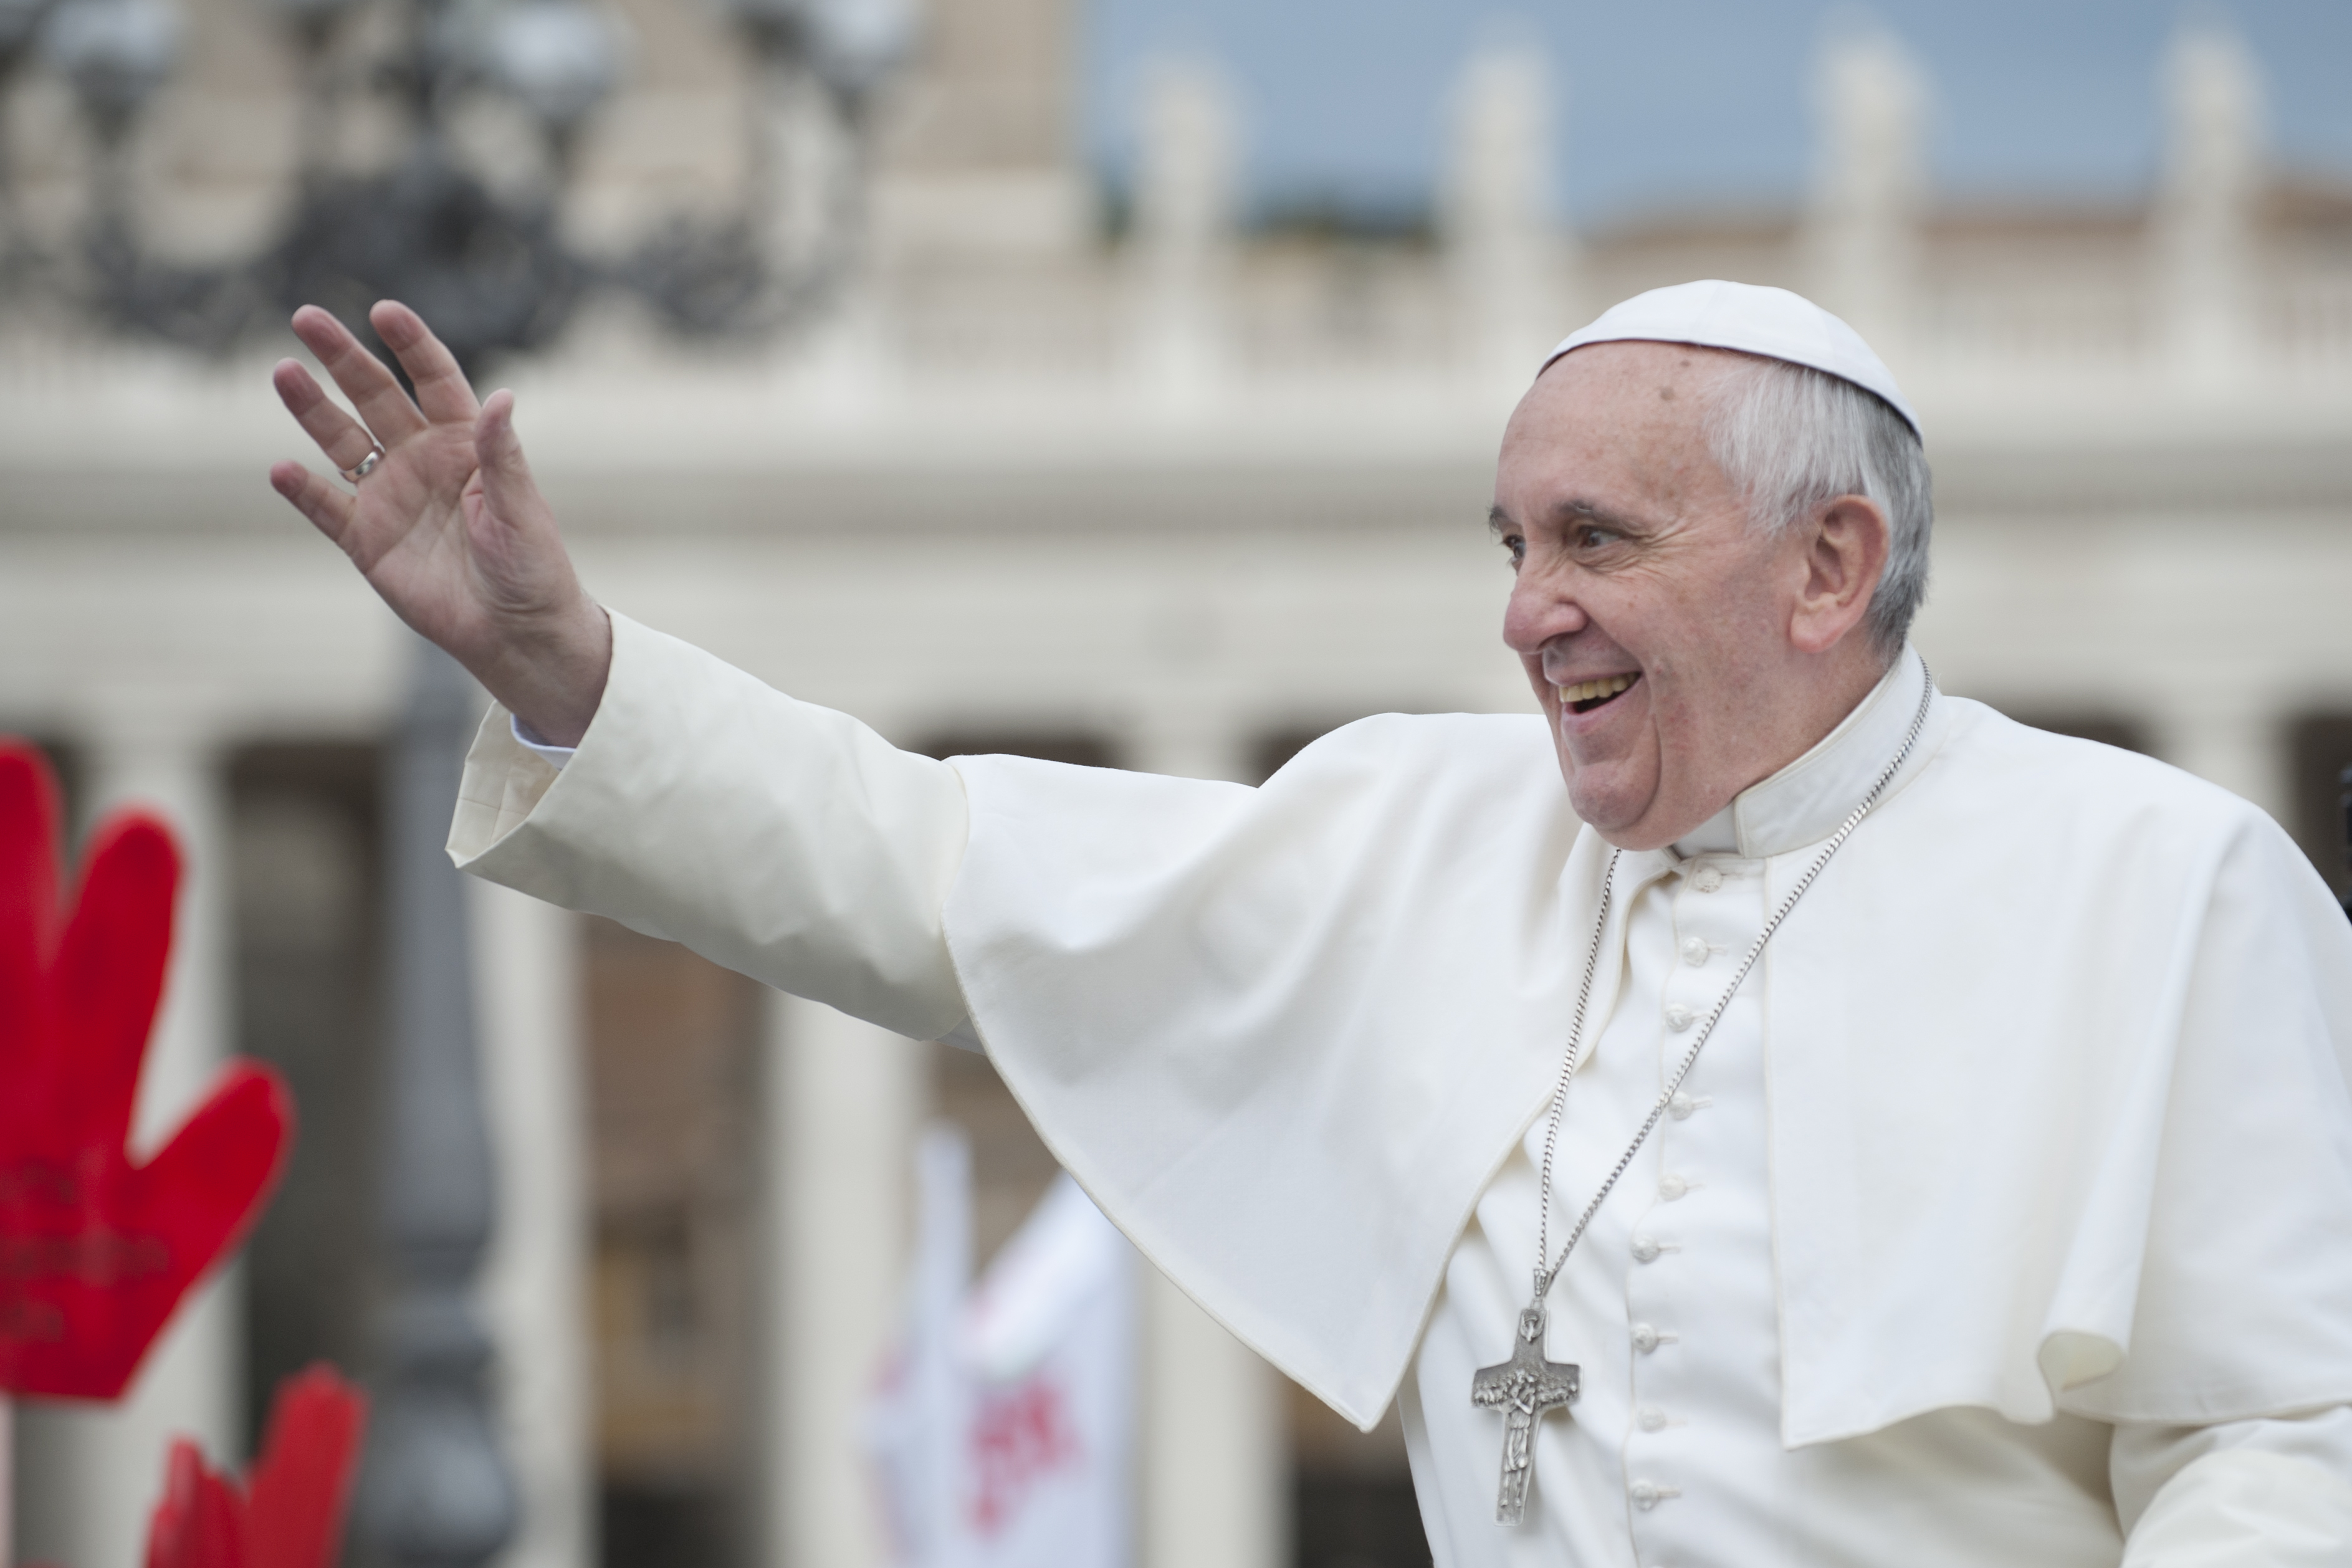 Vatican City, Rome, Italy - November 13, 2013: Pope Francis on the popemobile blesses the faithful in St. Peter's Square.